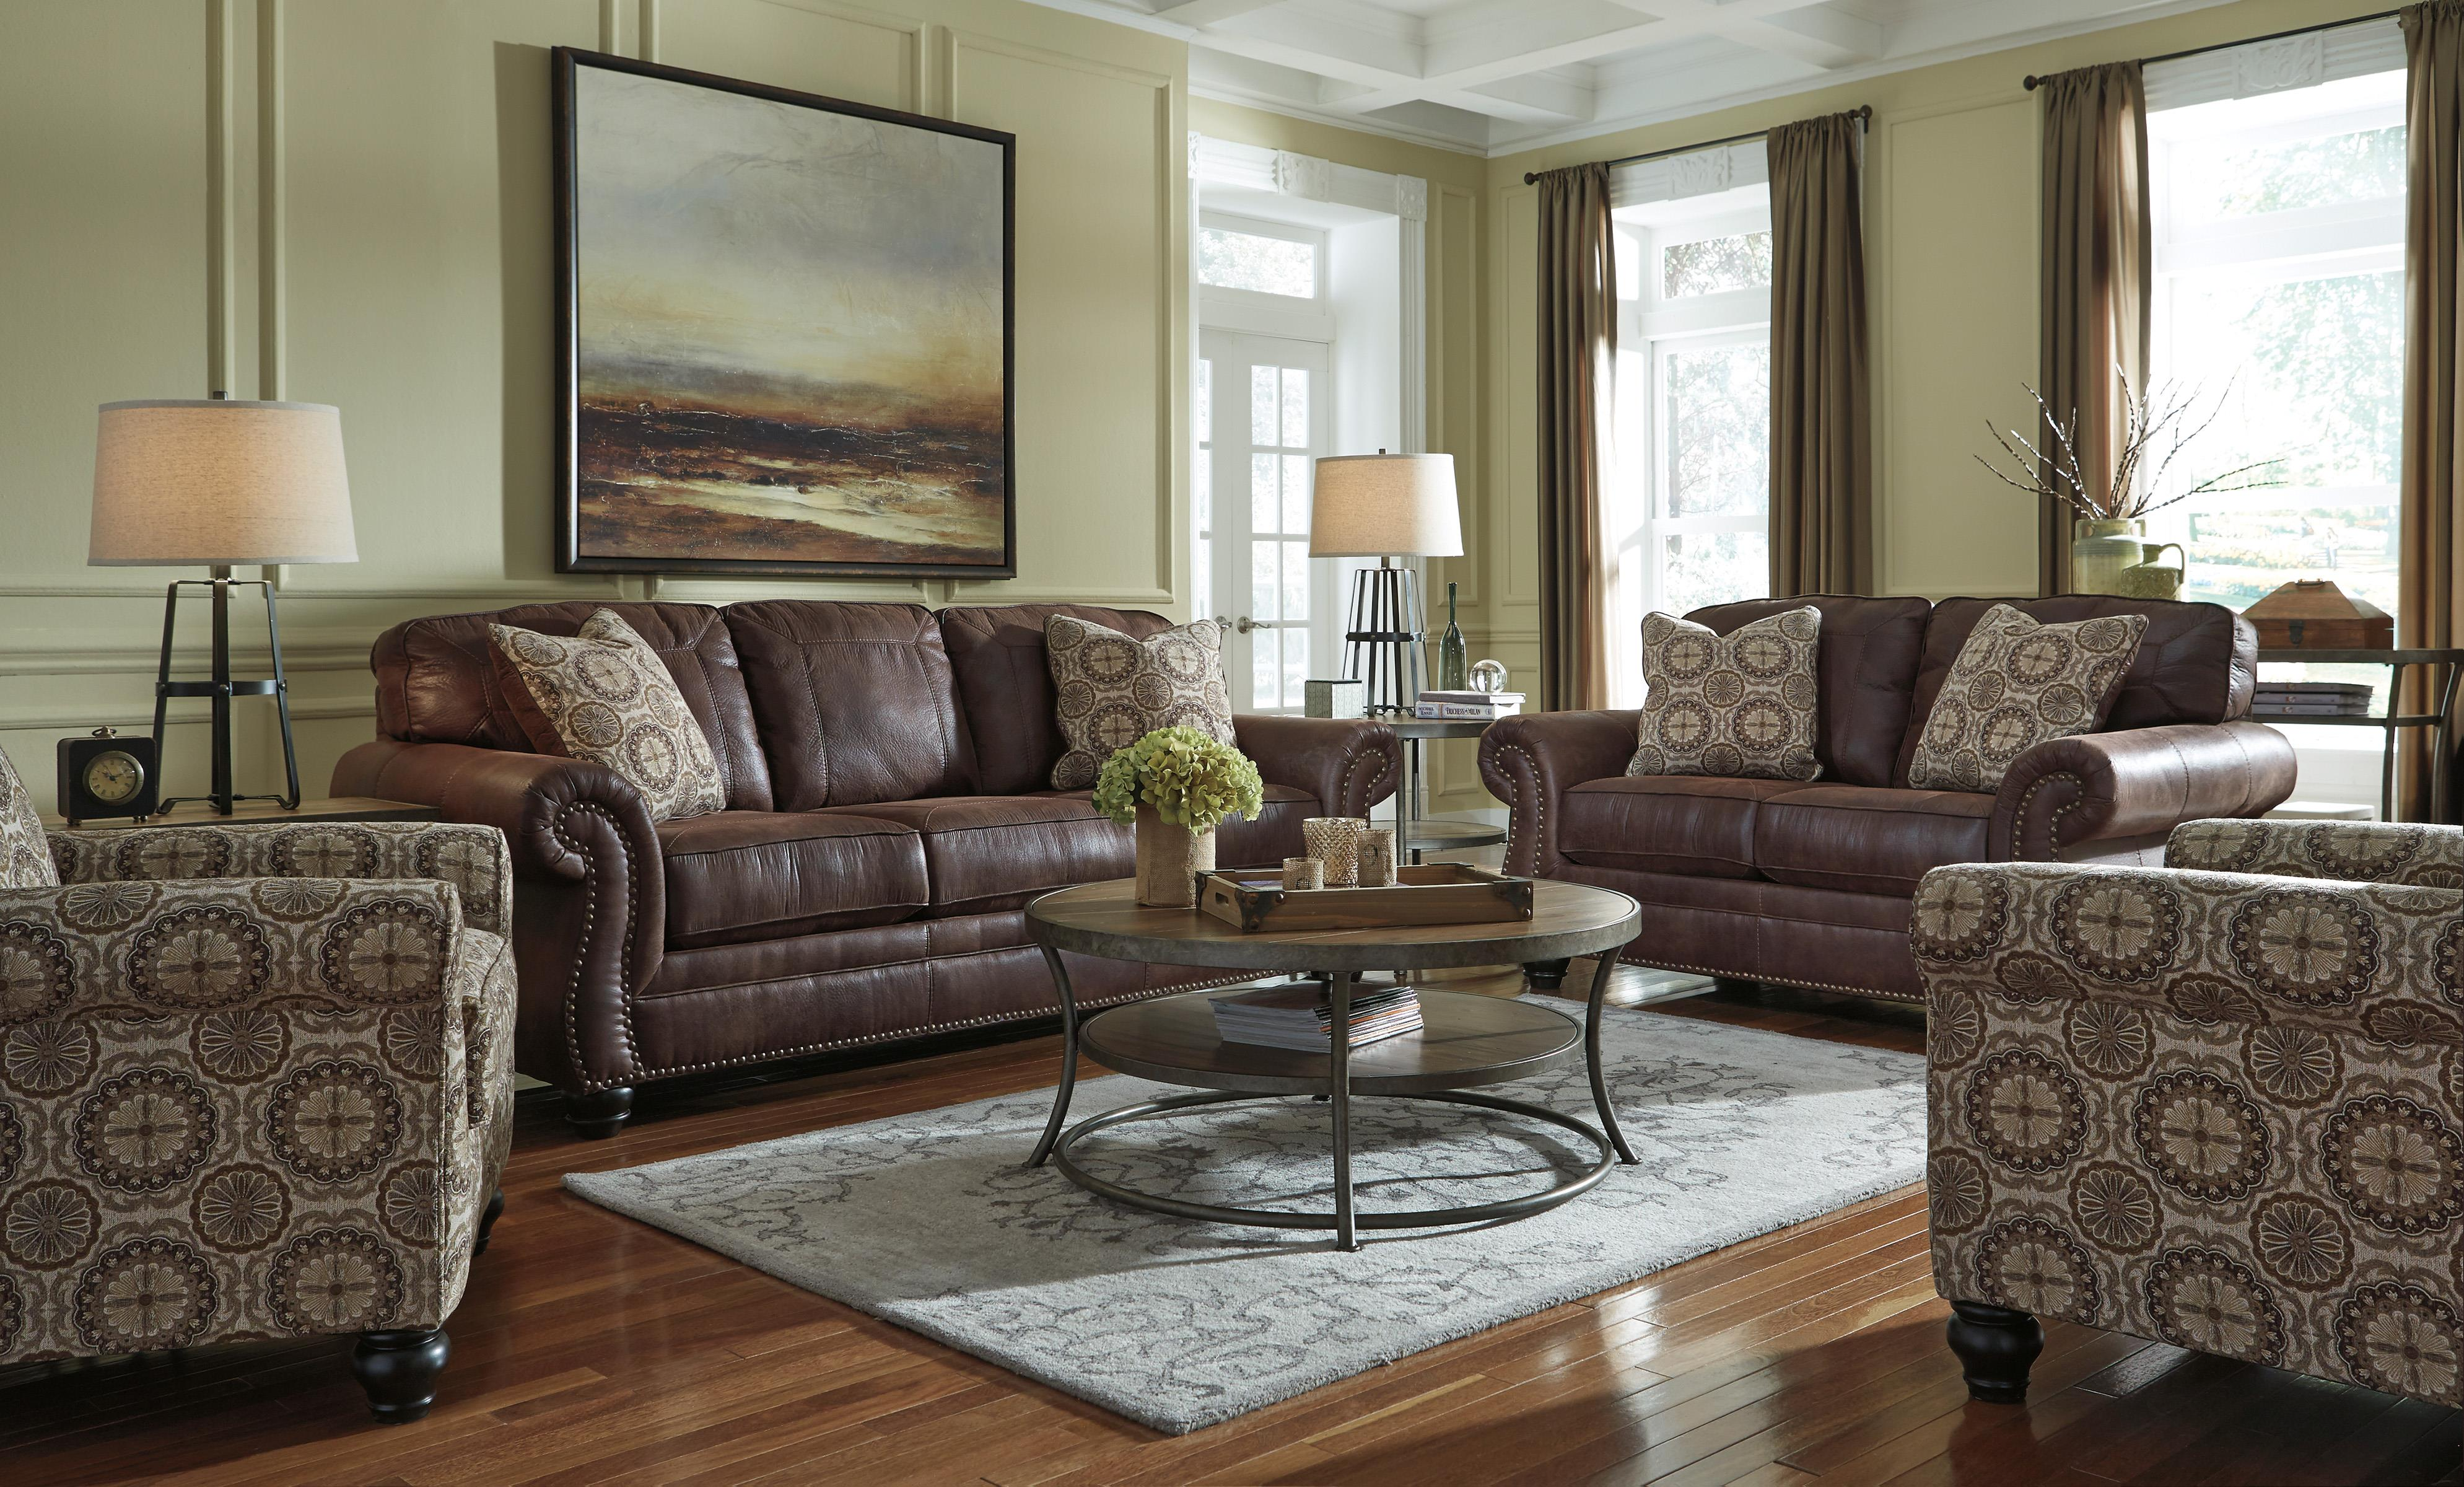 Accent Chair with Bun Feet   Rolled Arms. Accent Chair with Bun Feet   Rolled Arms by Benchcraft   Wolf and